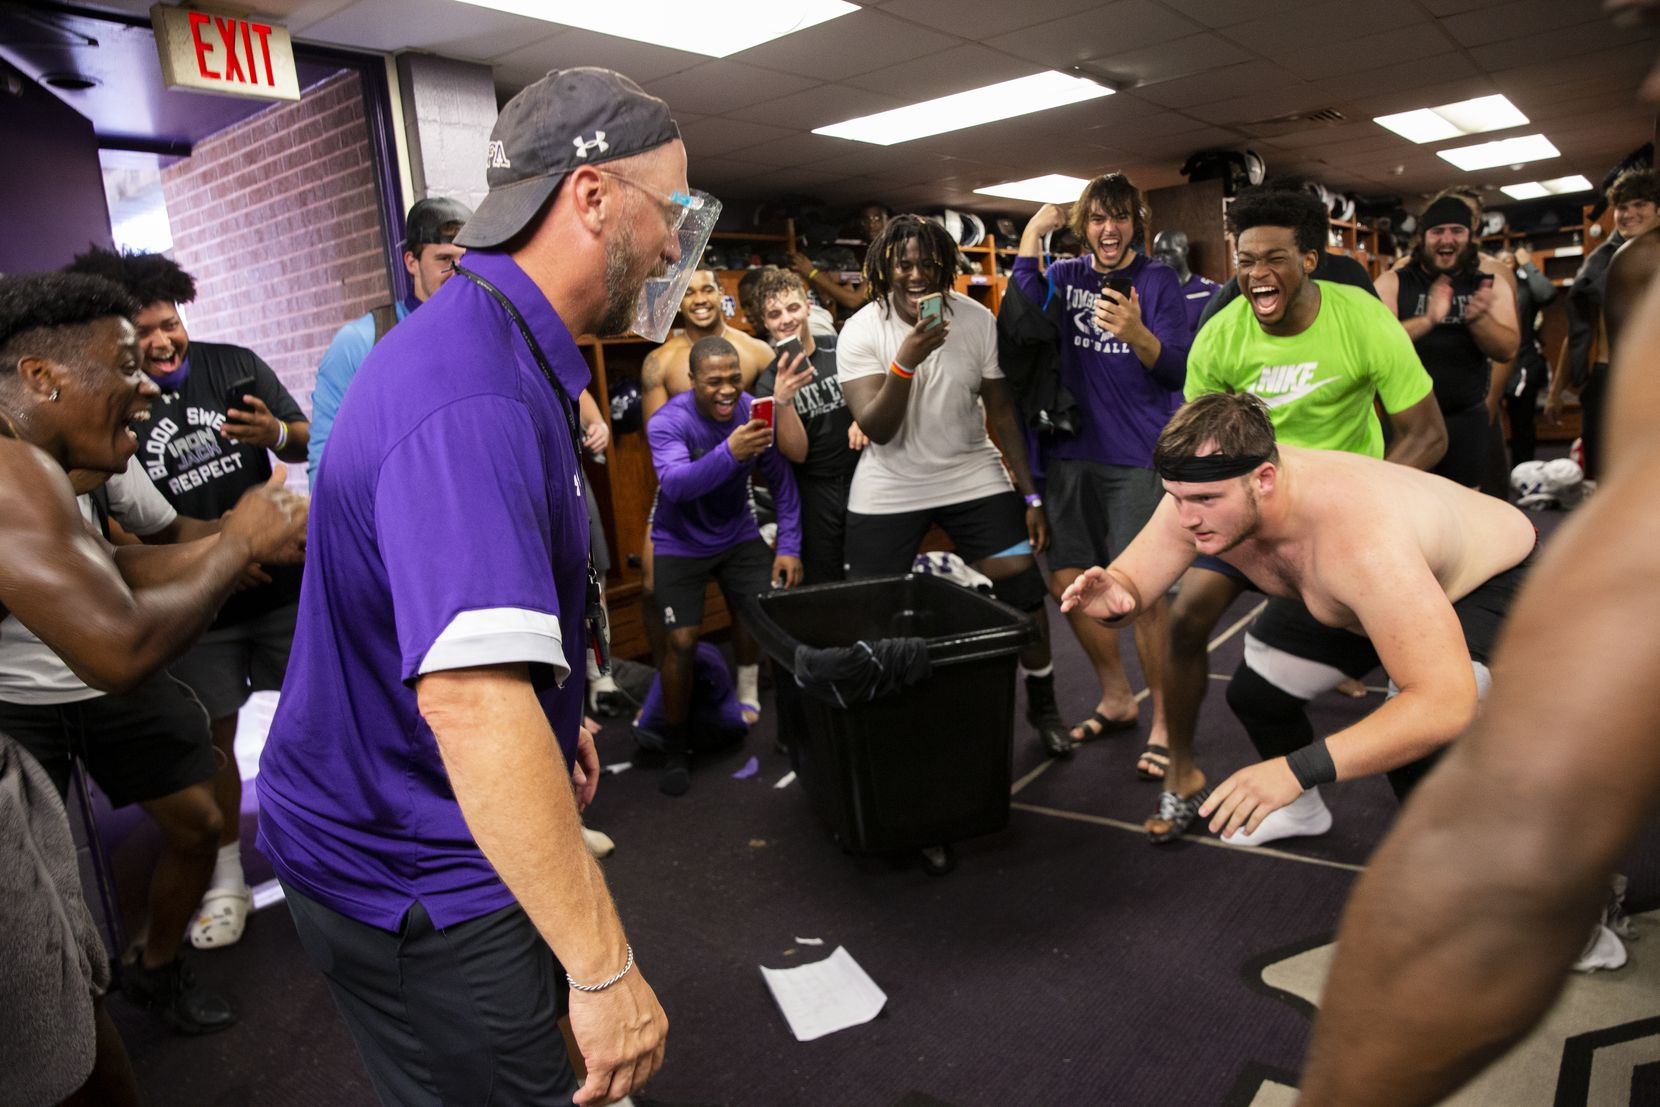 Stephen F. Austin Lumberjacks players cheer on as coach Colby Carthel jokes about wrestling offensive lineman Frank Thompson (57) in the locker room after practice in Nacogdoches on Thursday, Oct. 8, 2020 . (Juan Figueroa/ The Dallas Morning News)